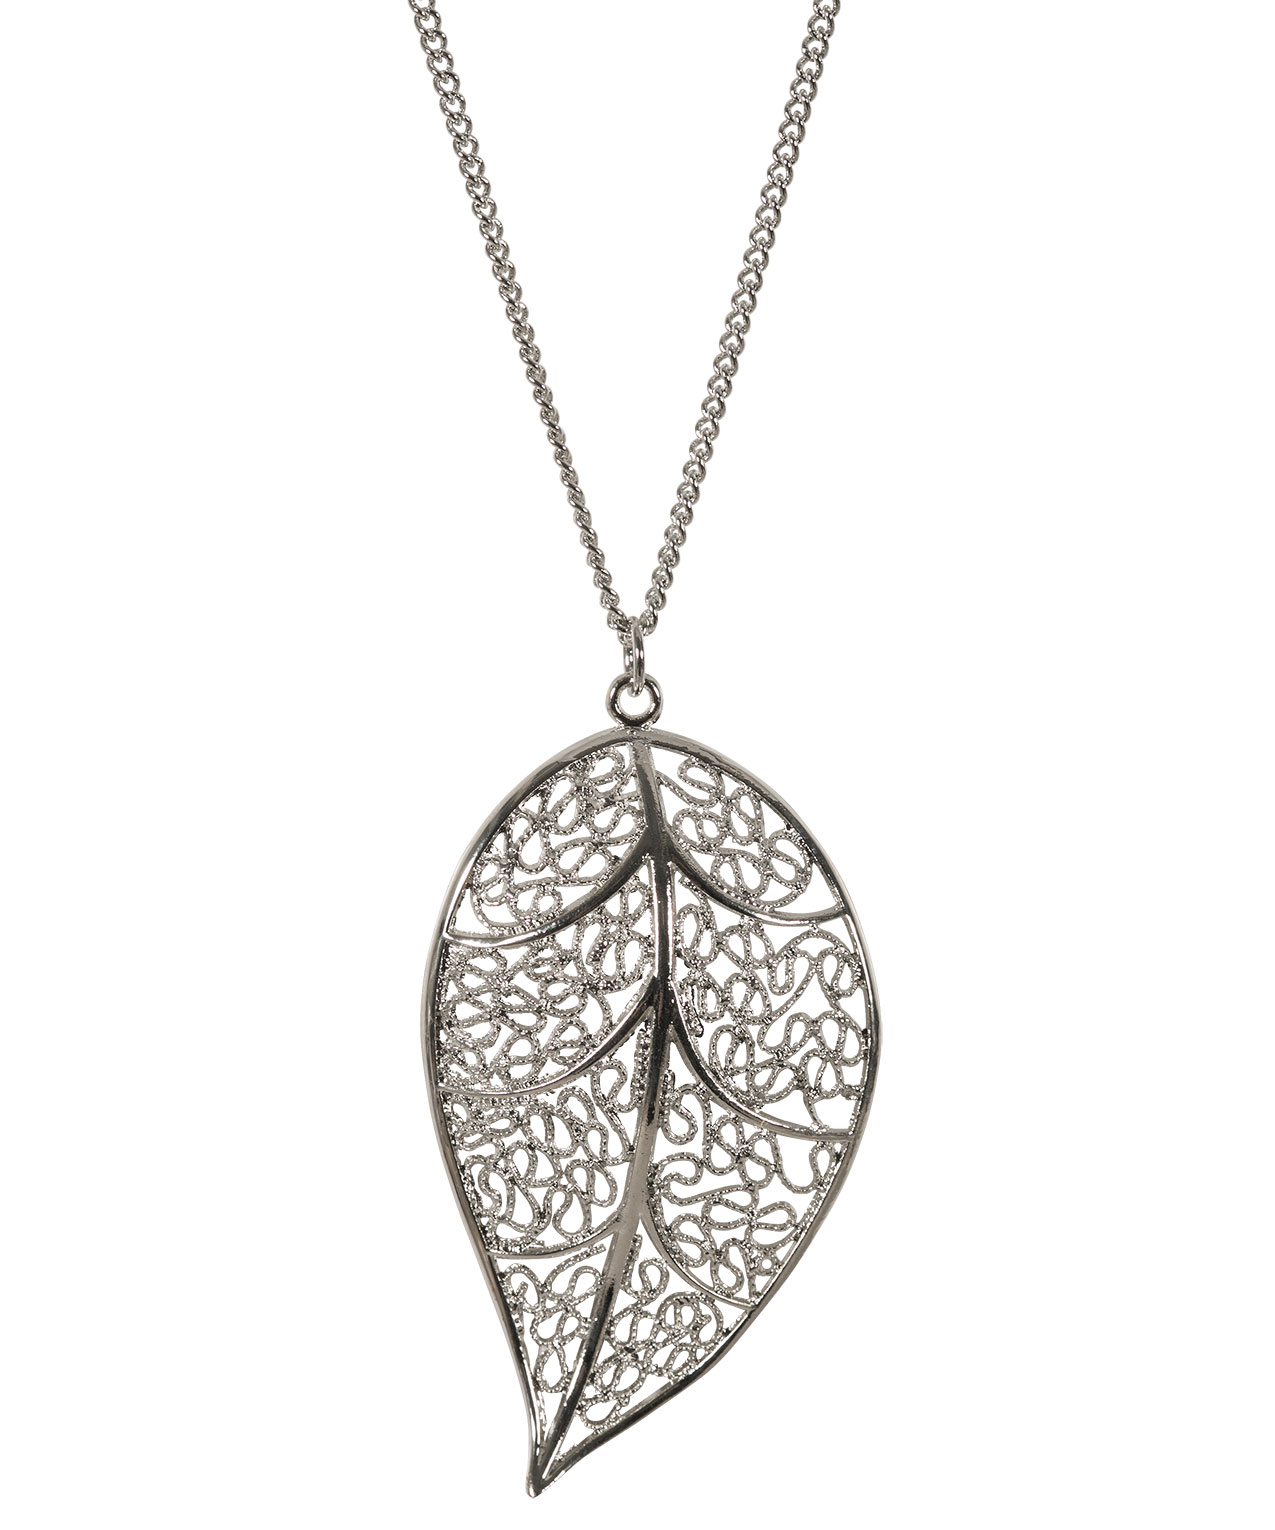 com plant leaf pendant necklace co product long original lovett notonthehighstreet cheese by